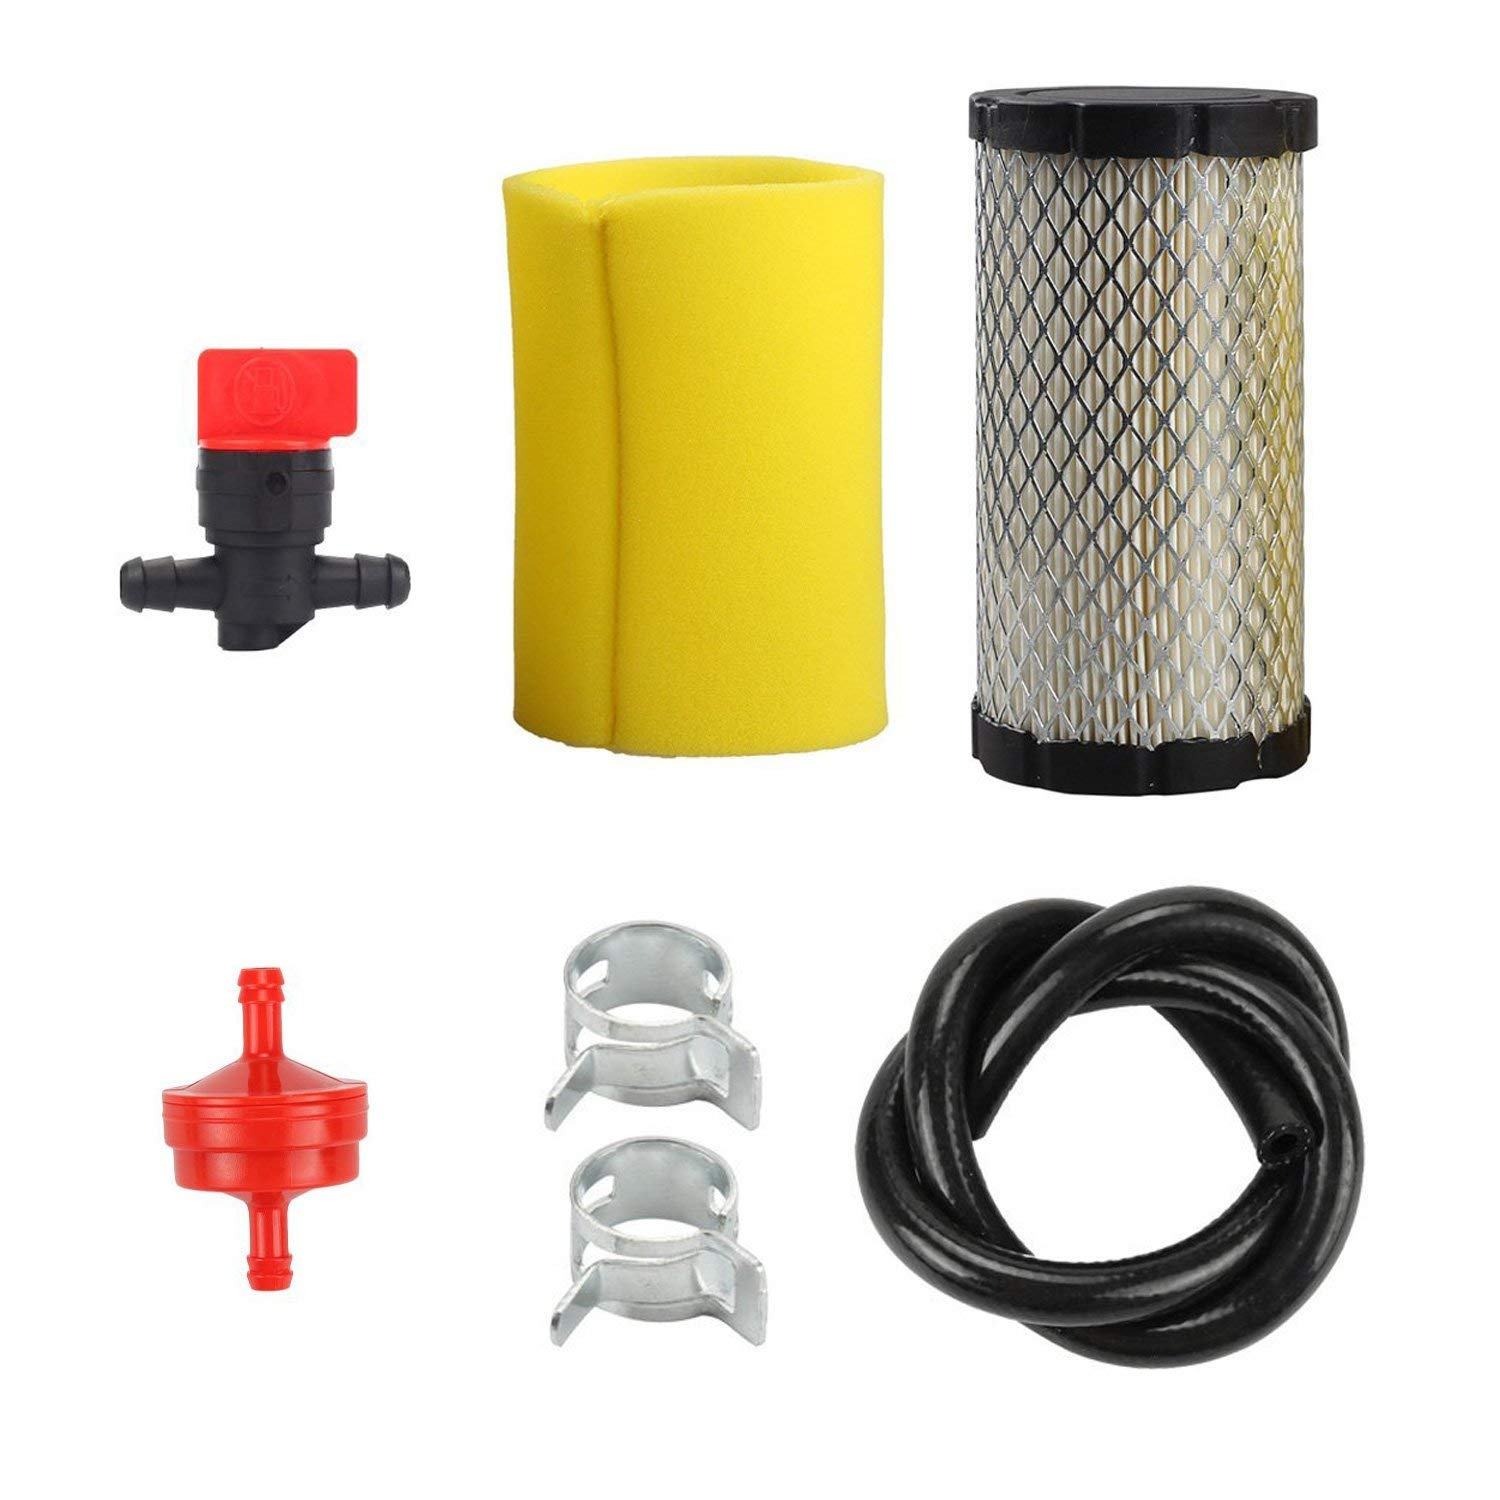 hight resolution of get quotations hifrom air filter pre filter with fuel filter line vlave for briggs stratton 5415k john